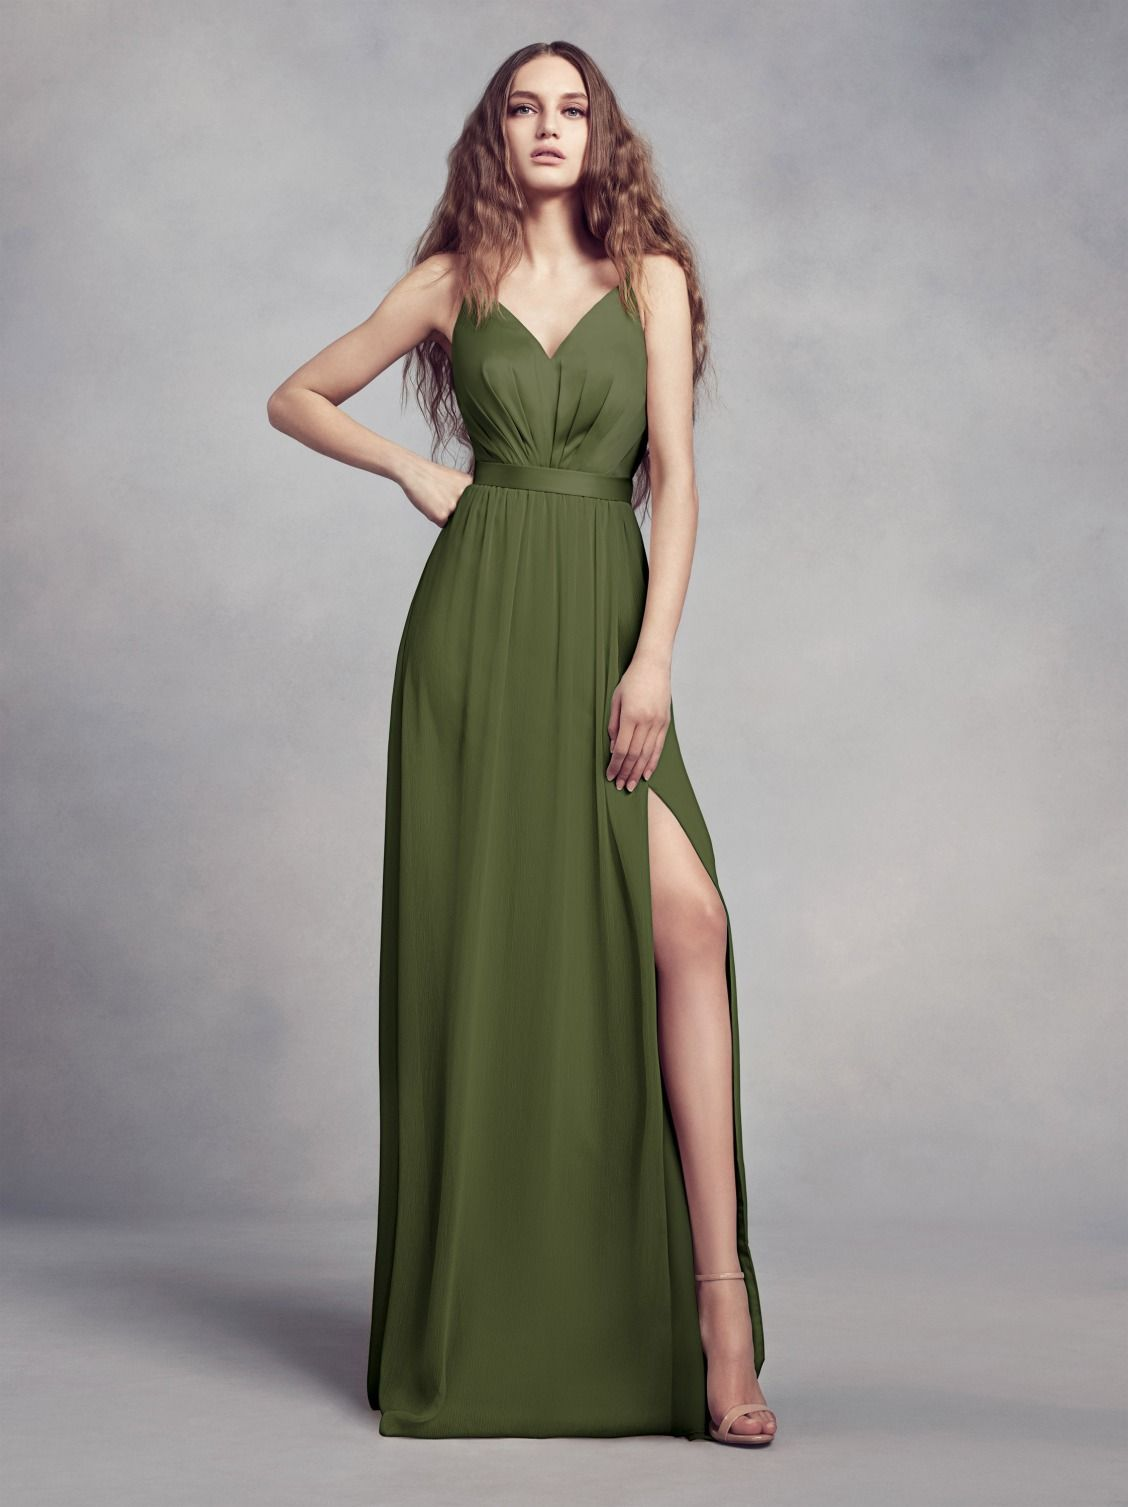 The newest color from Vera Wang, an olive bridesmaid dress for the ...